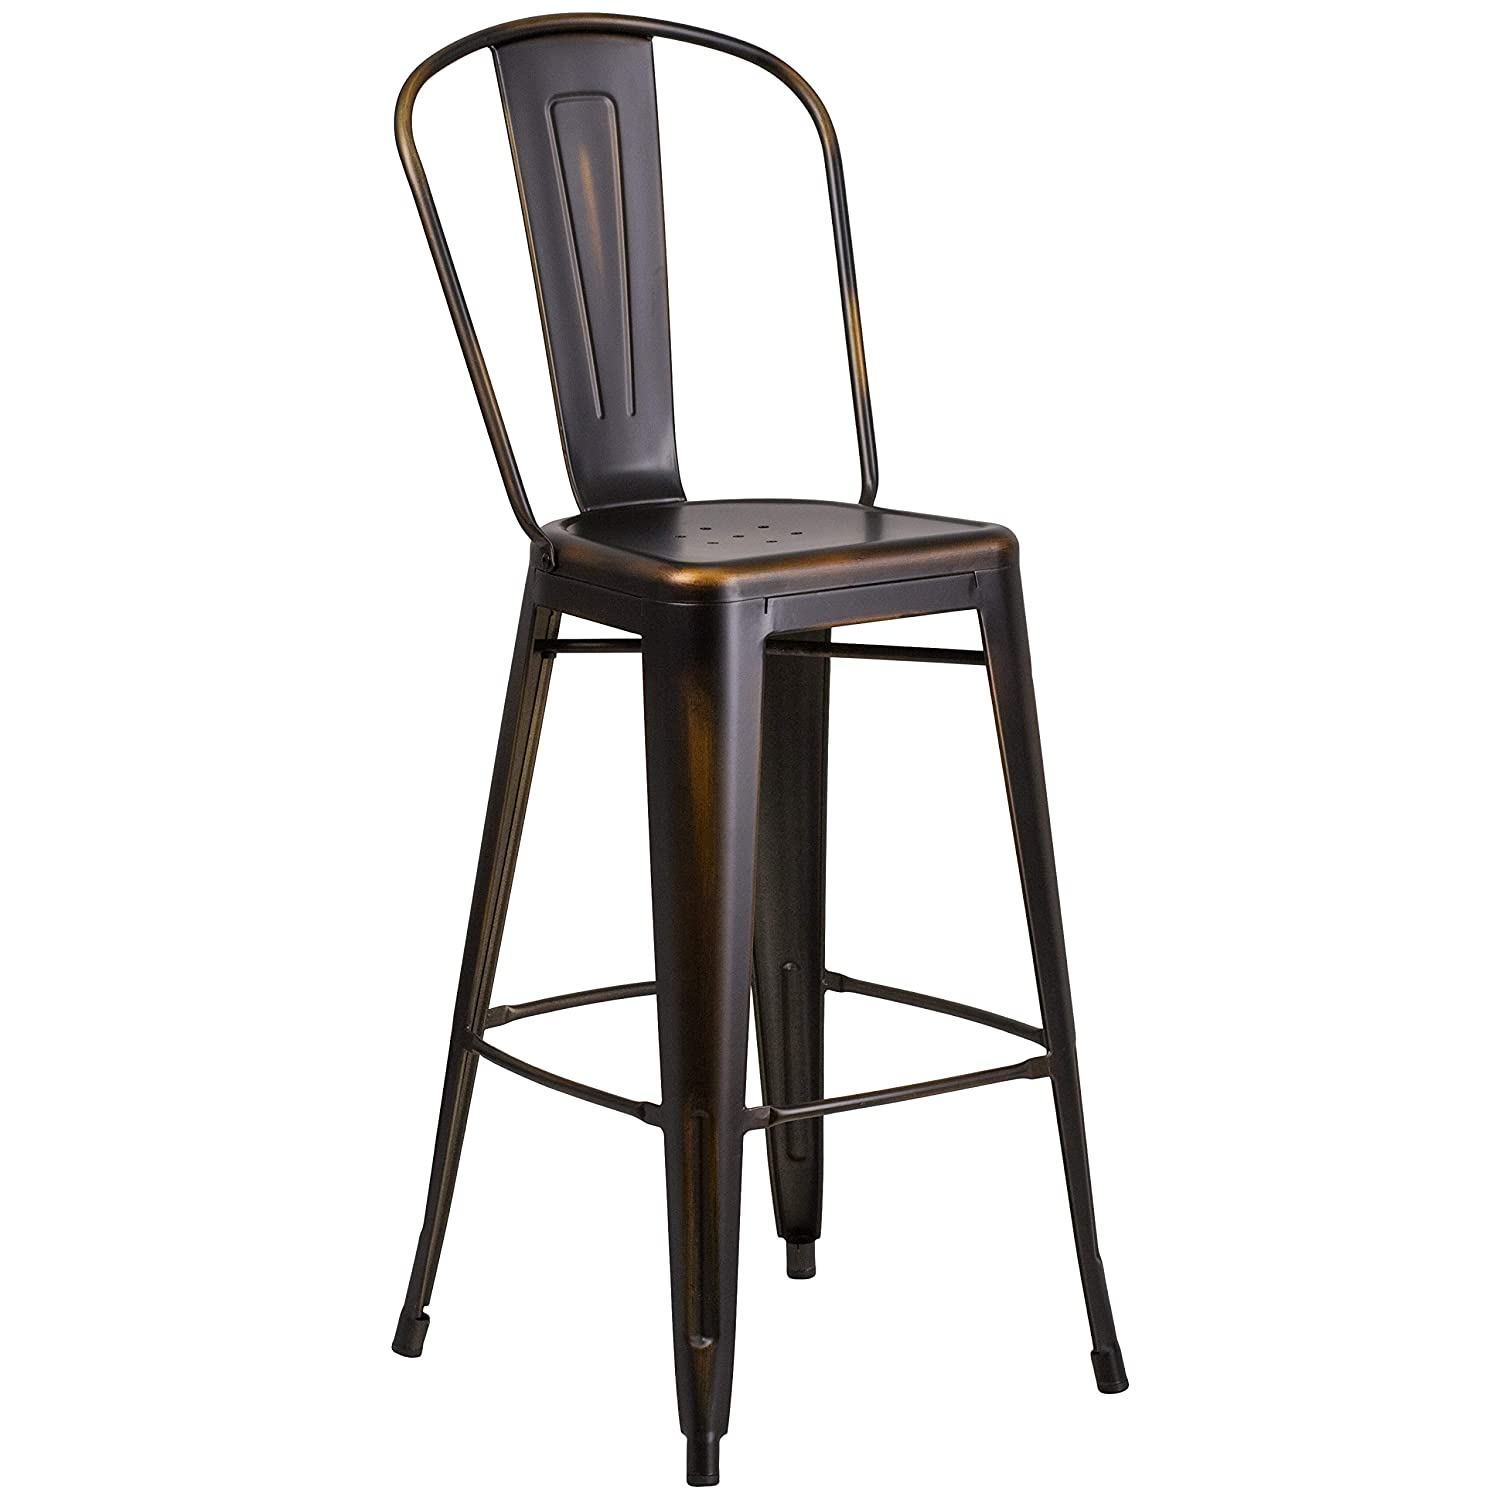 Flash Furniture 4 Pk. 30 High Distressed Copper Metal Indoor-Outdoor Barstool with Back